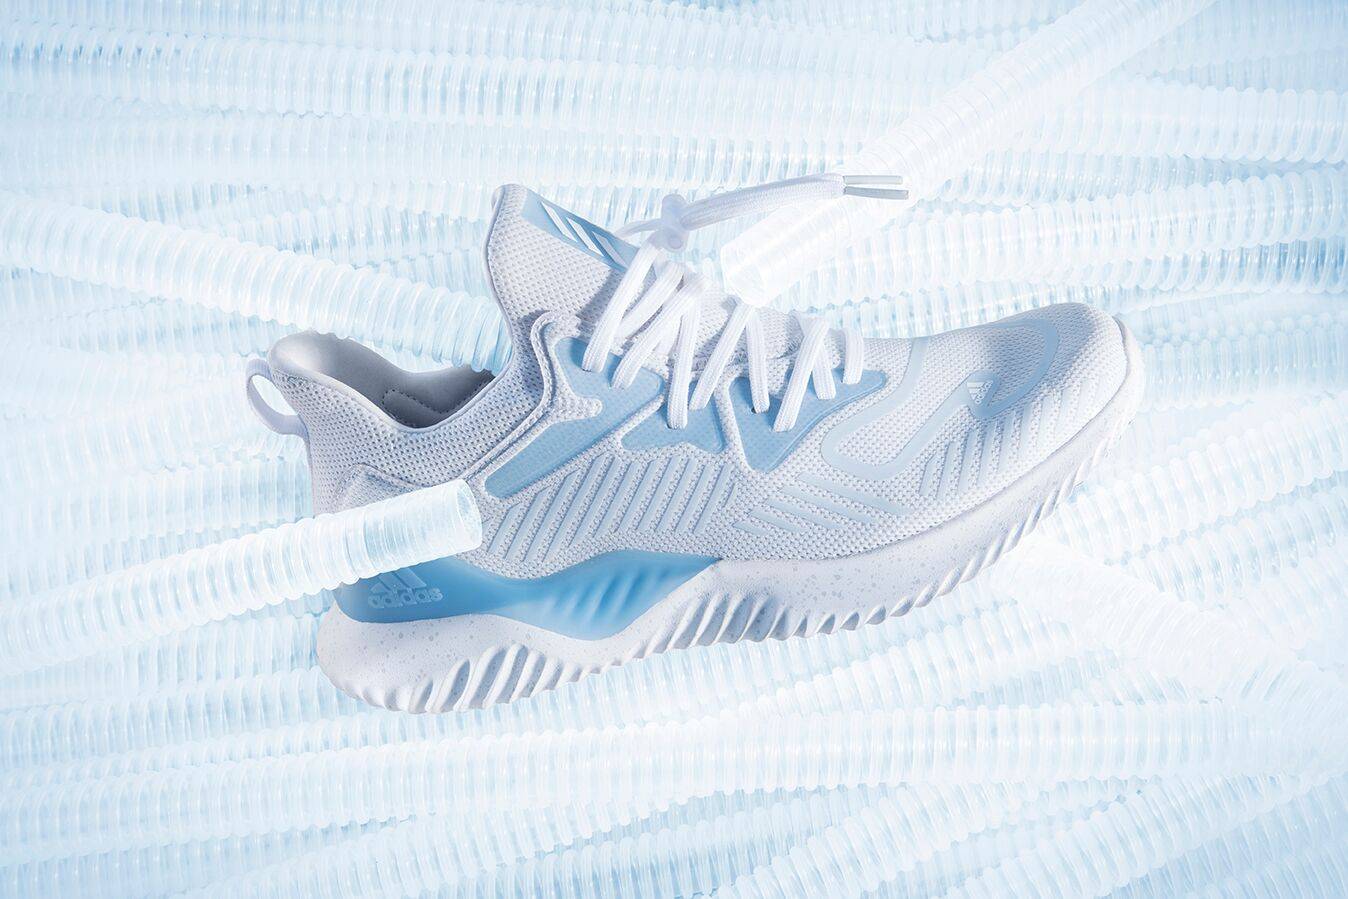 97dfb29c1fbbc Extra Butter x adidas Alpha Bounce Release   VO2 Lab Pop-up — Adon ...